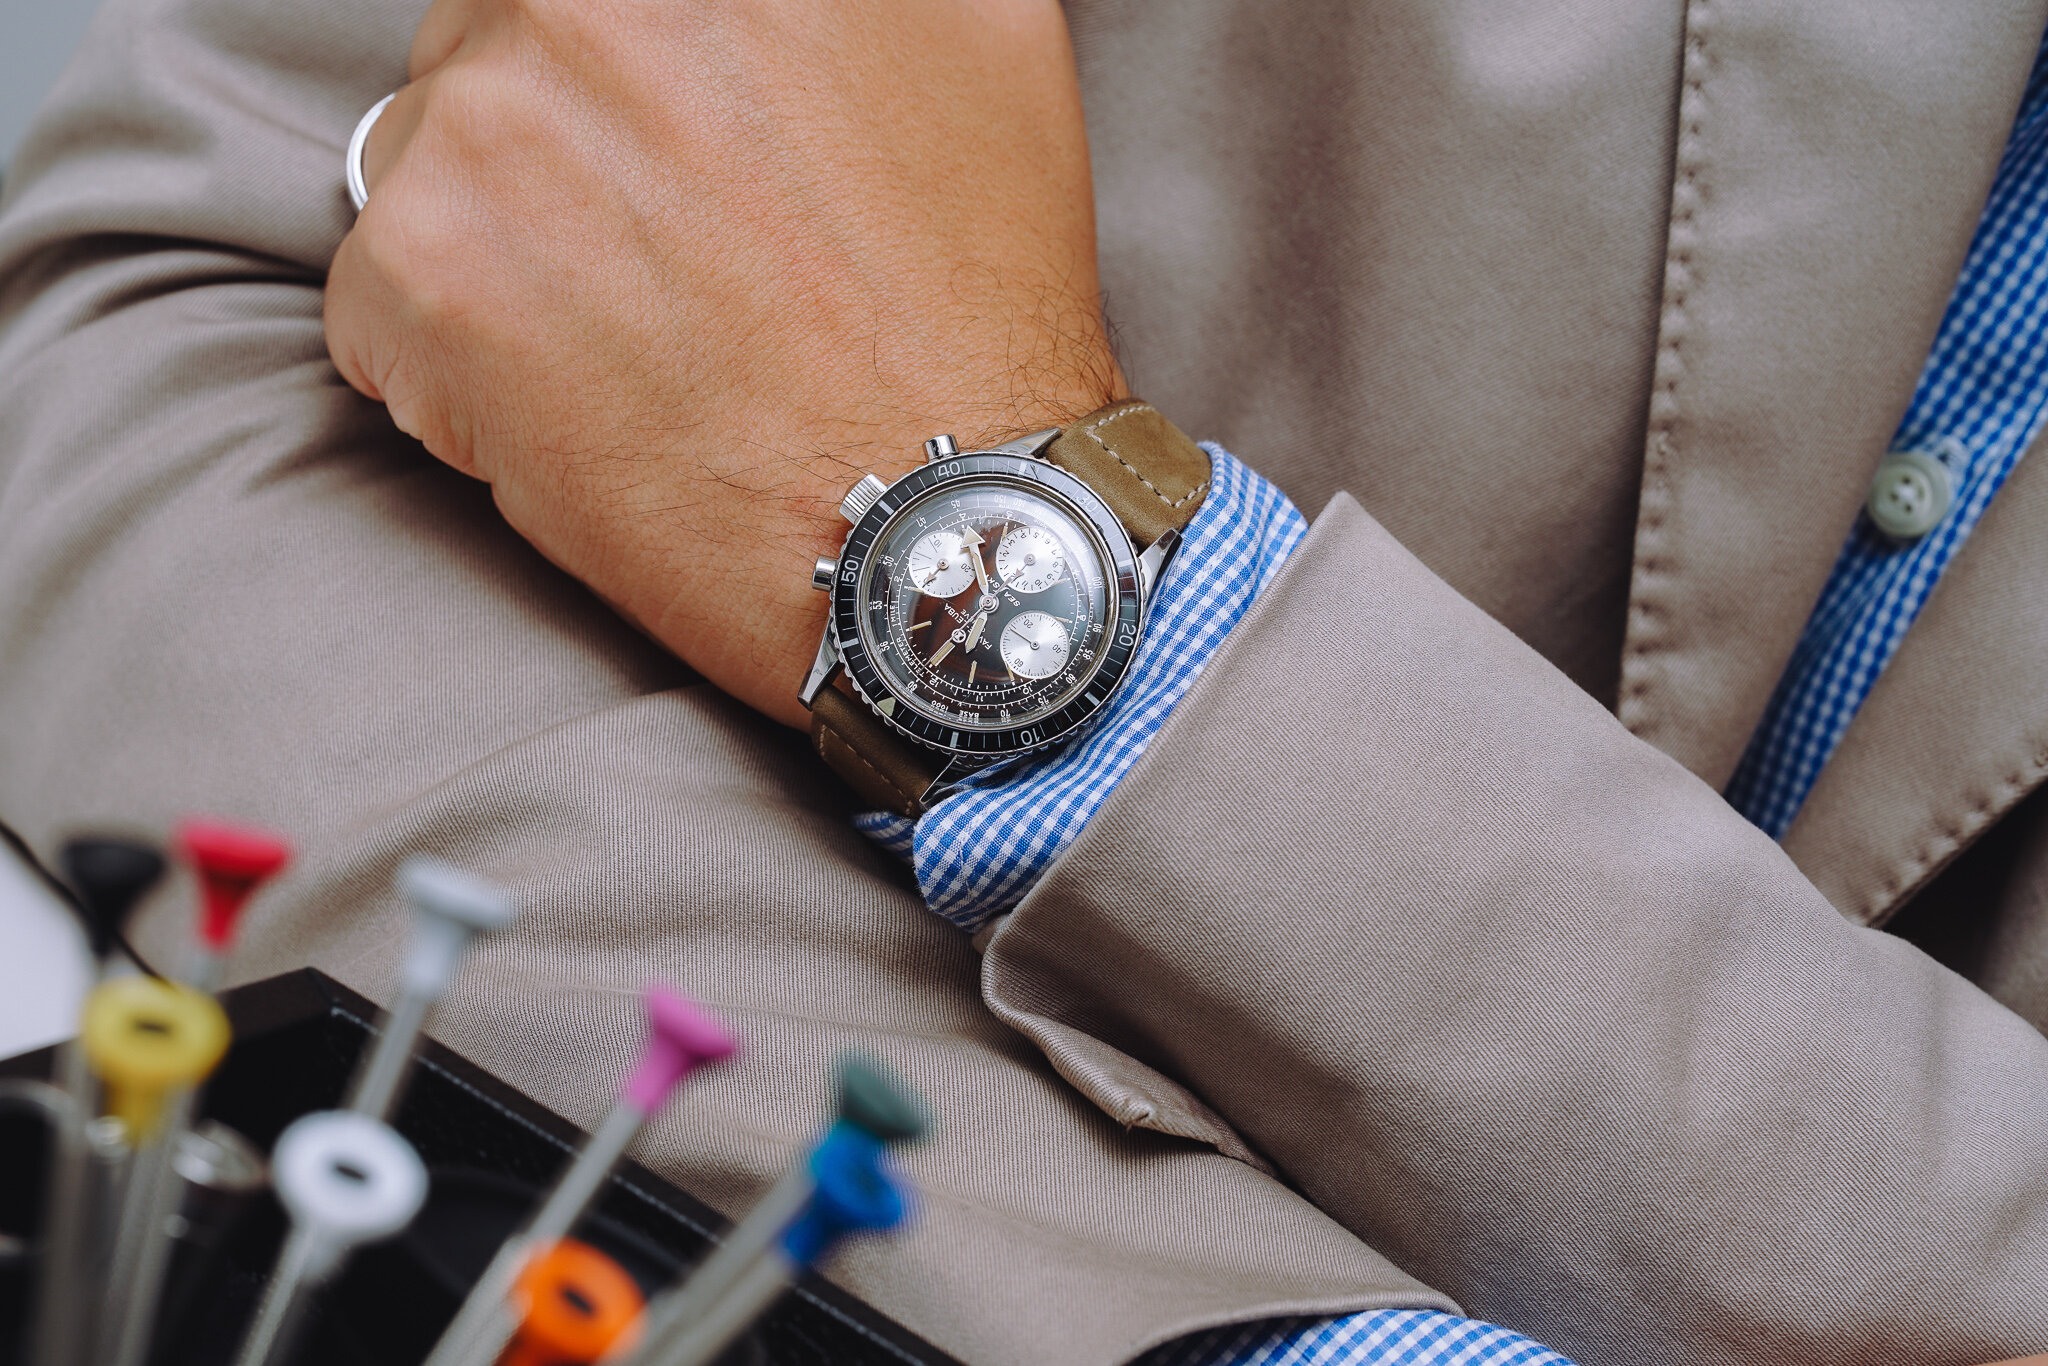 """""""There are truly great watches at all price points."""" - - Paul Boutros, Phillips Head of Watches"""